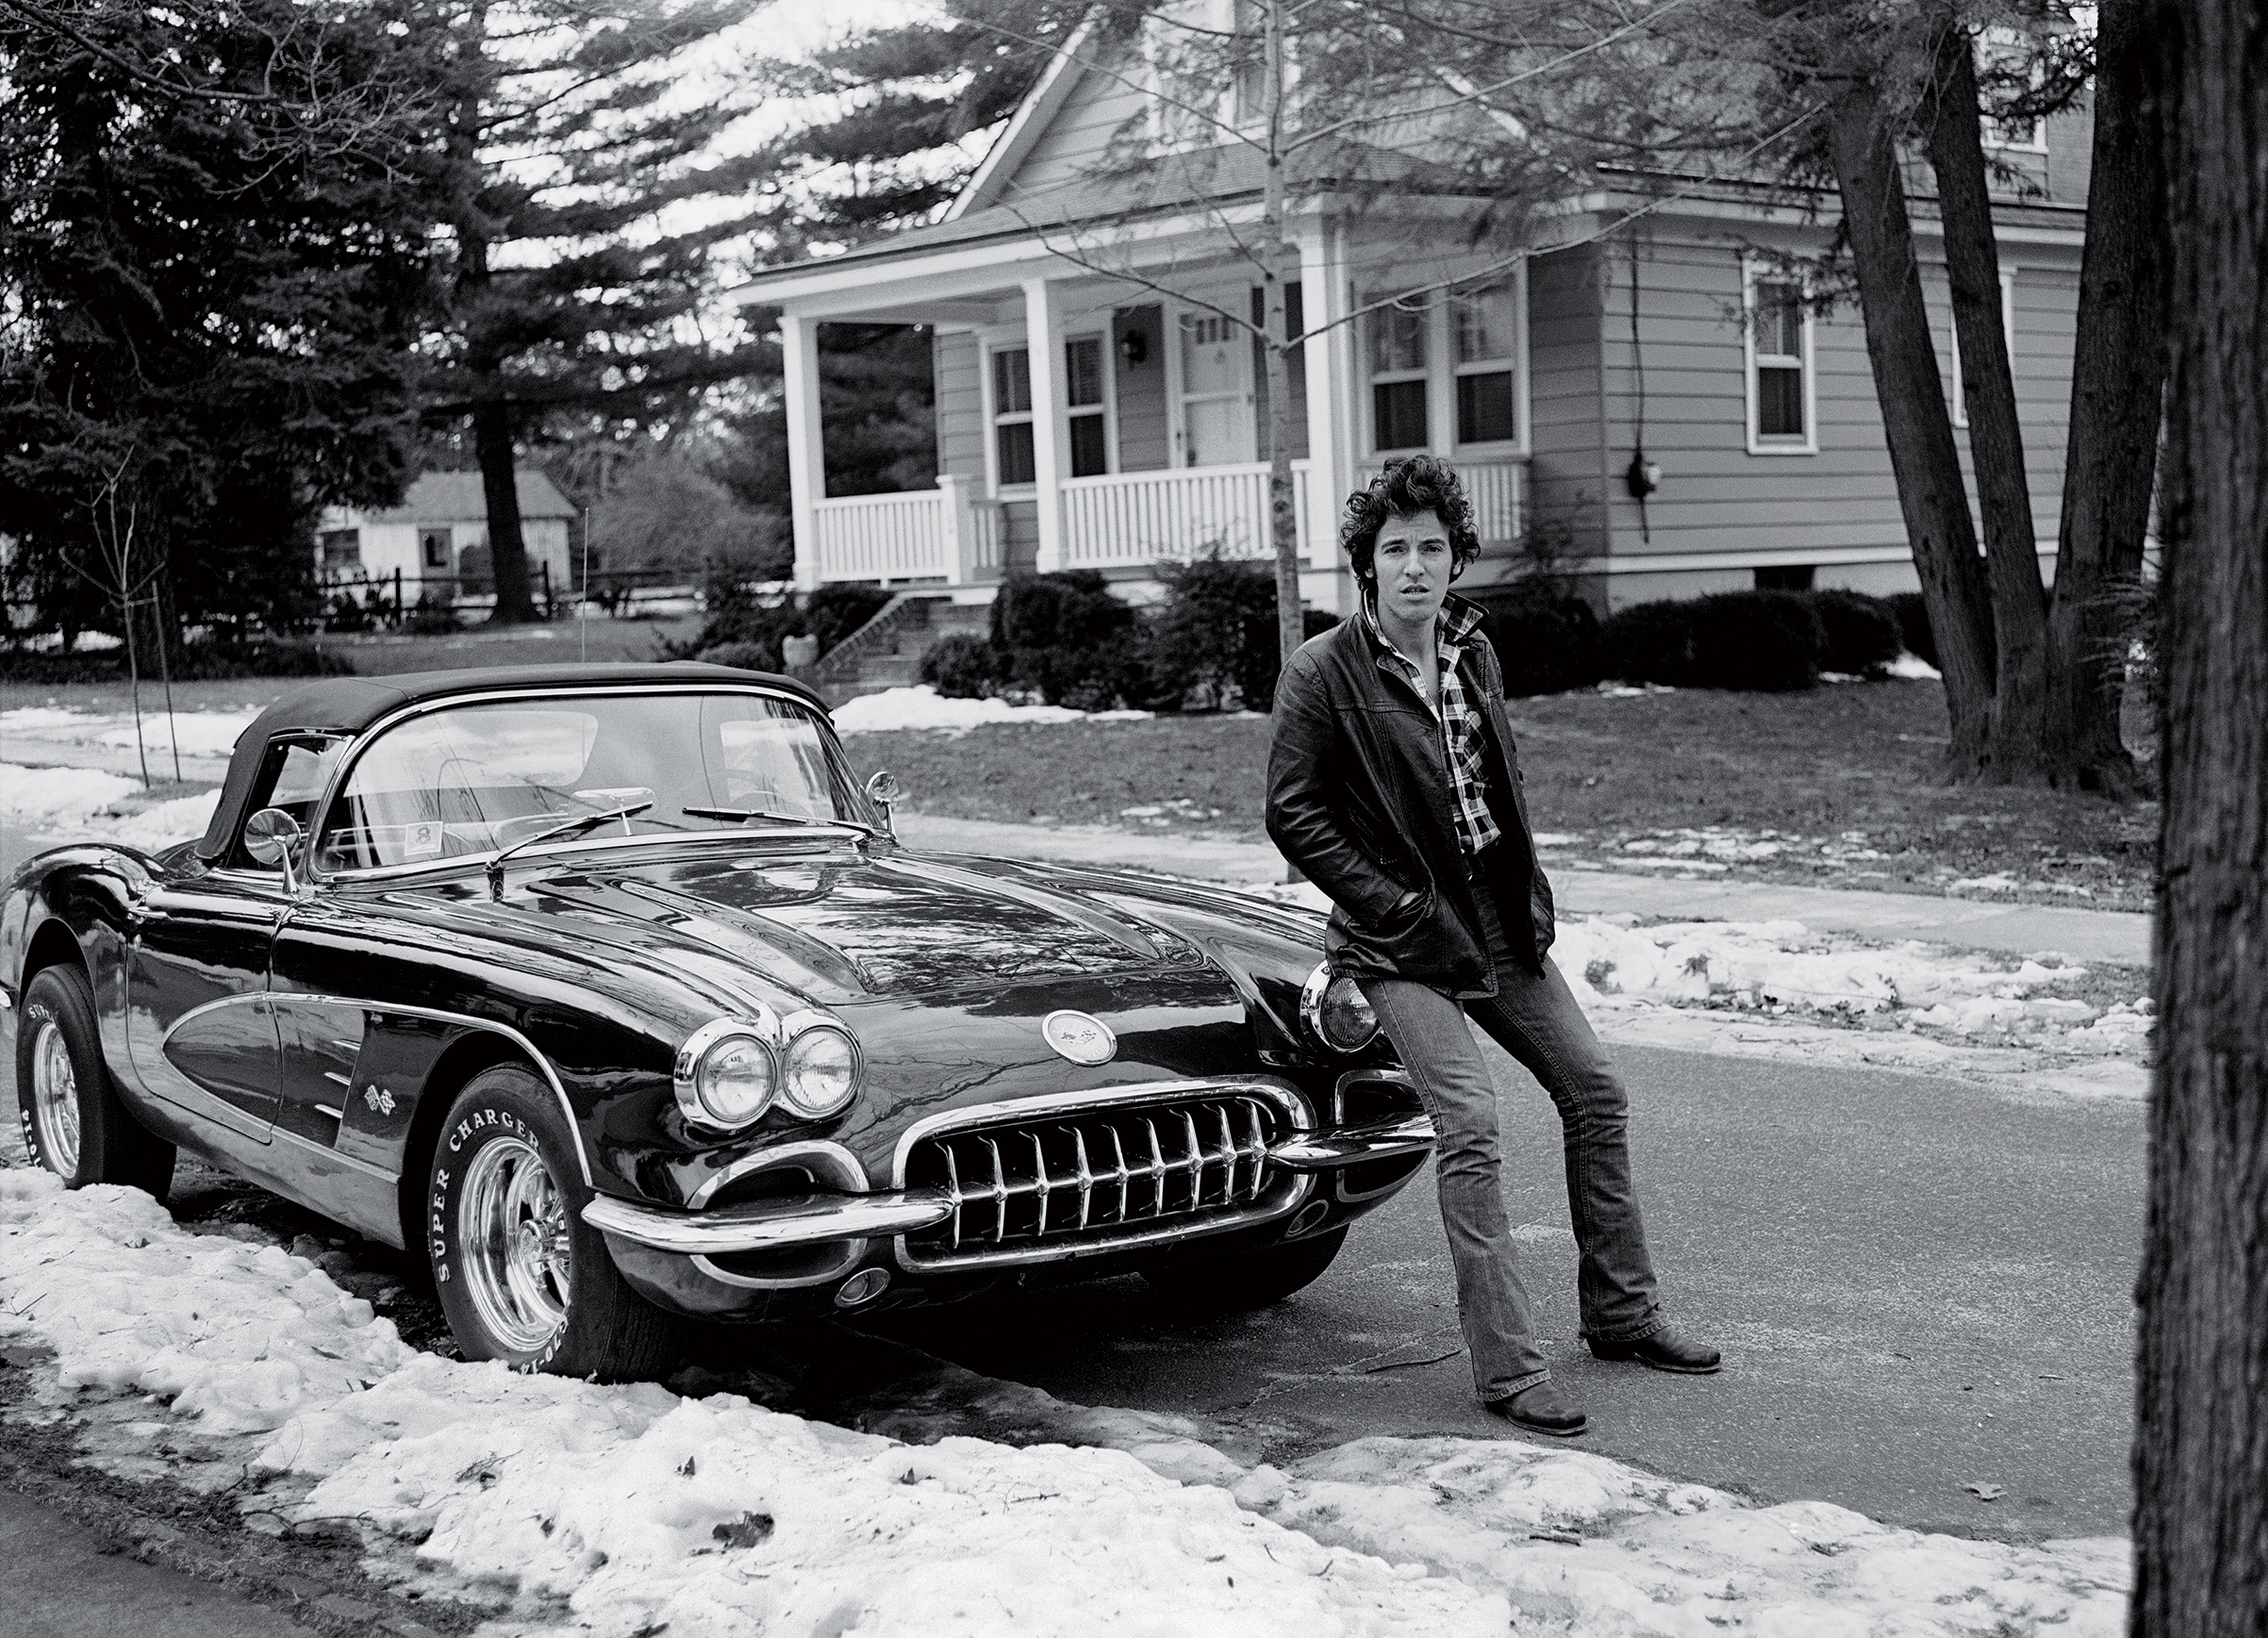 """Corvette Winter"" shot used by Springsteen on the cover of his autobiography ""Born To Run""."